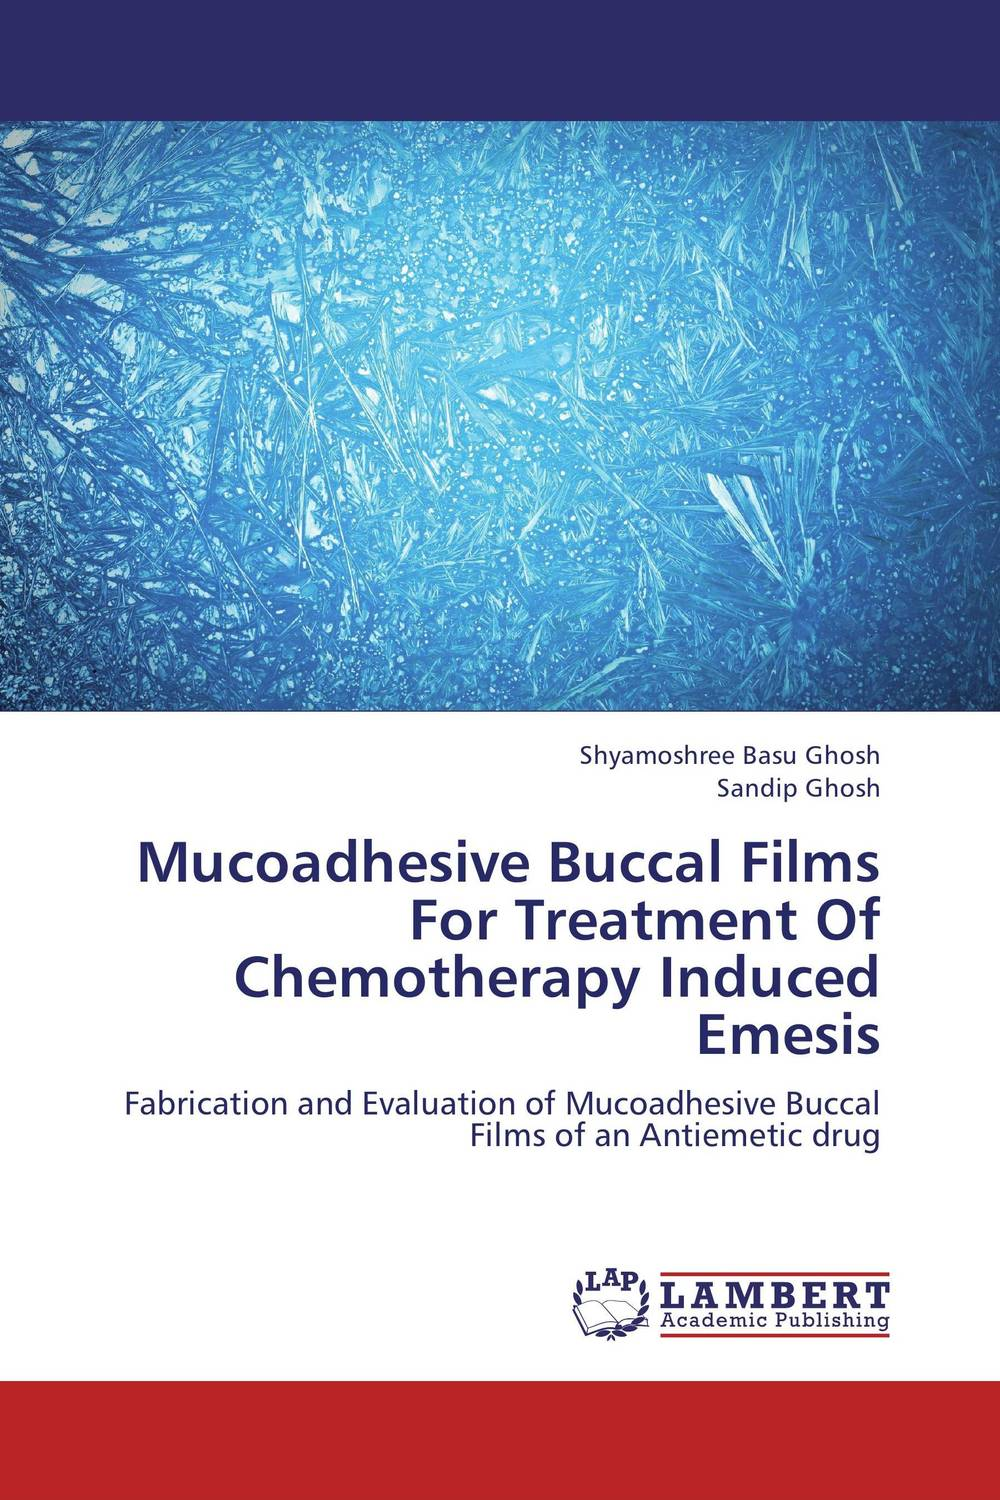 Mucoadhesive Buccal Films For Treatment Of Chemotherapy Induced Emesis formulation and evaluation of mucoadhesive buccal patches of labetalol page 8